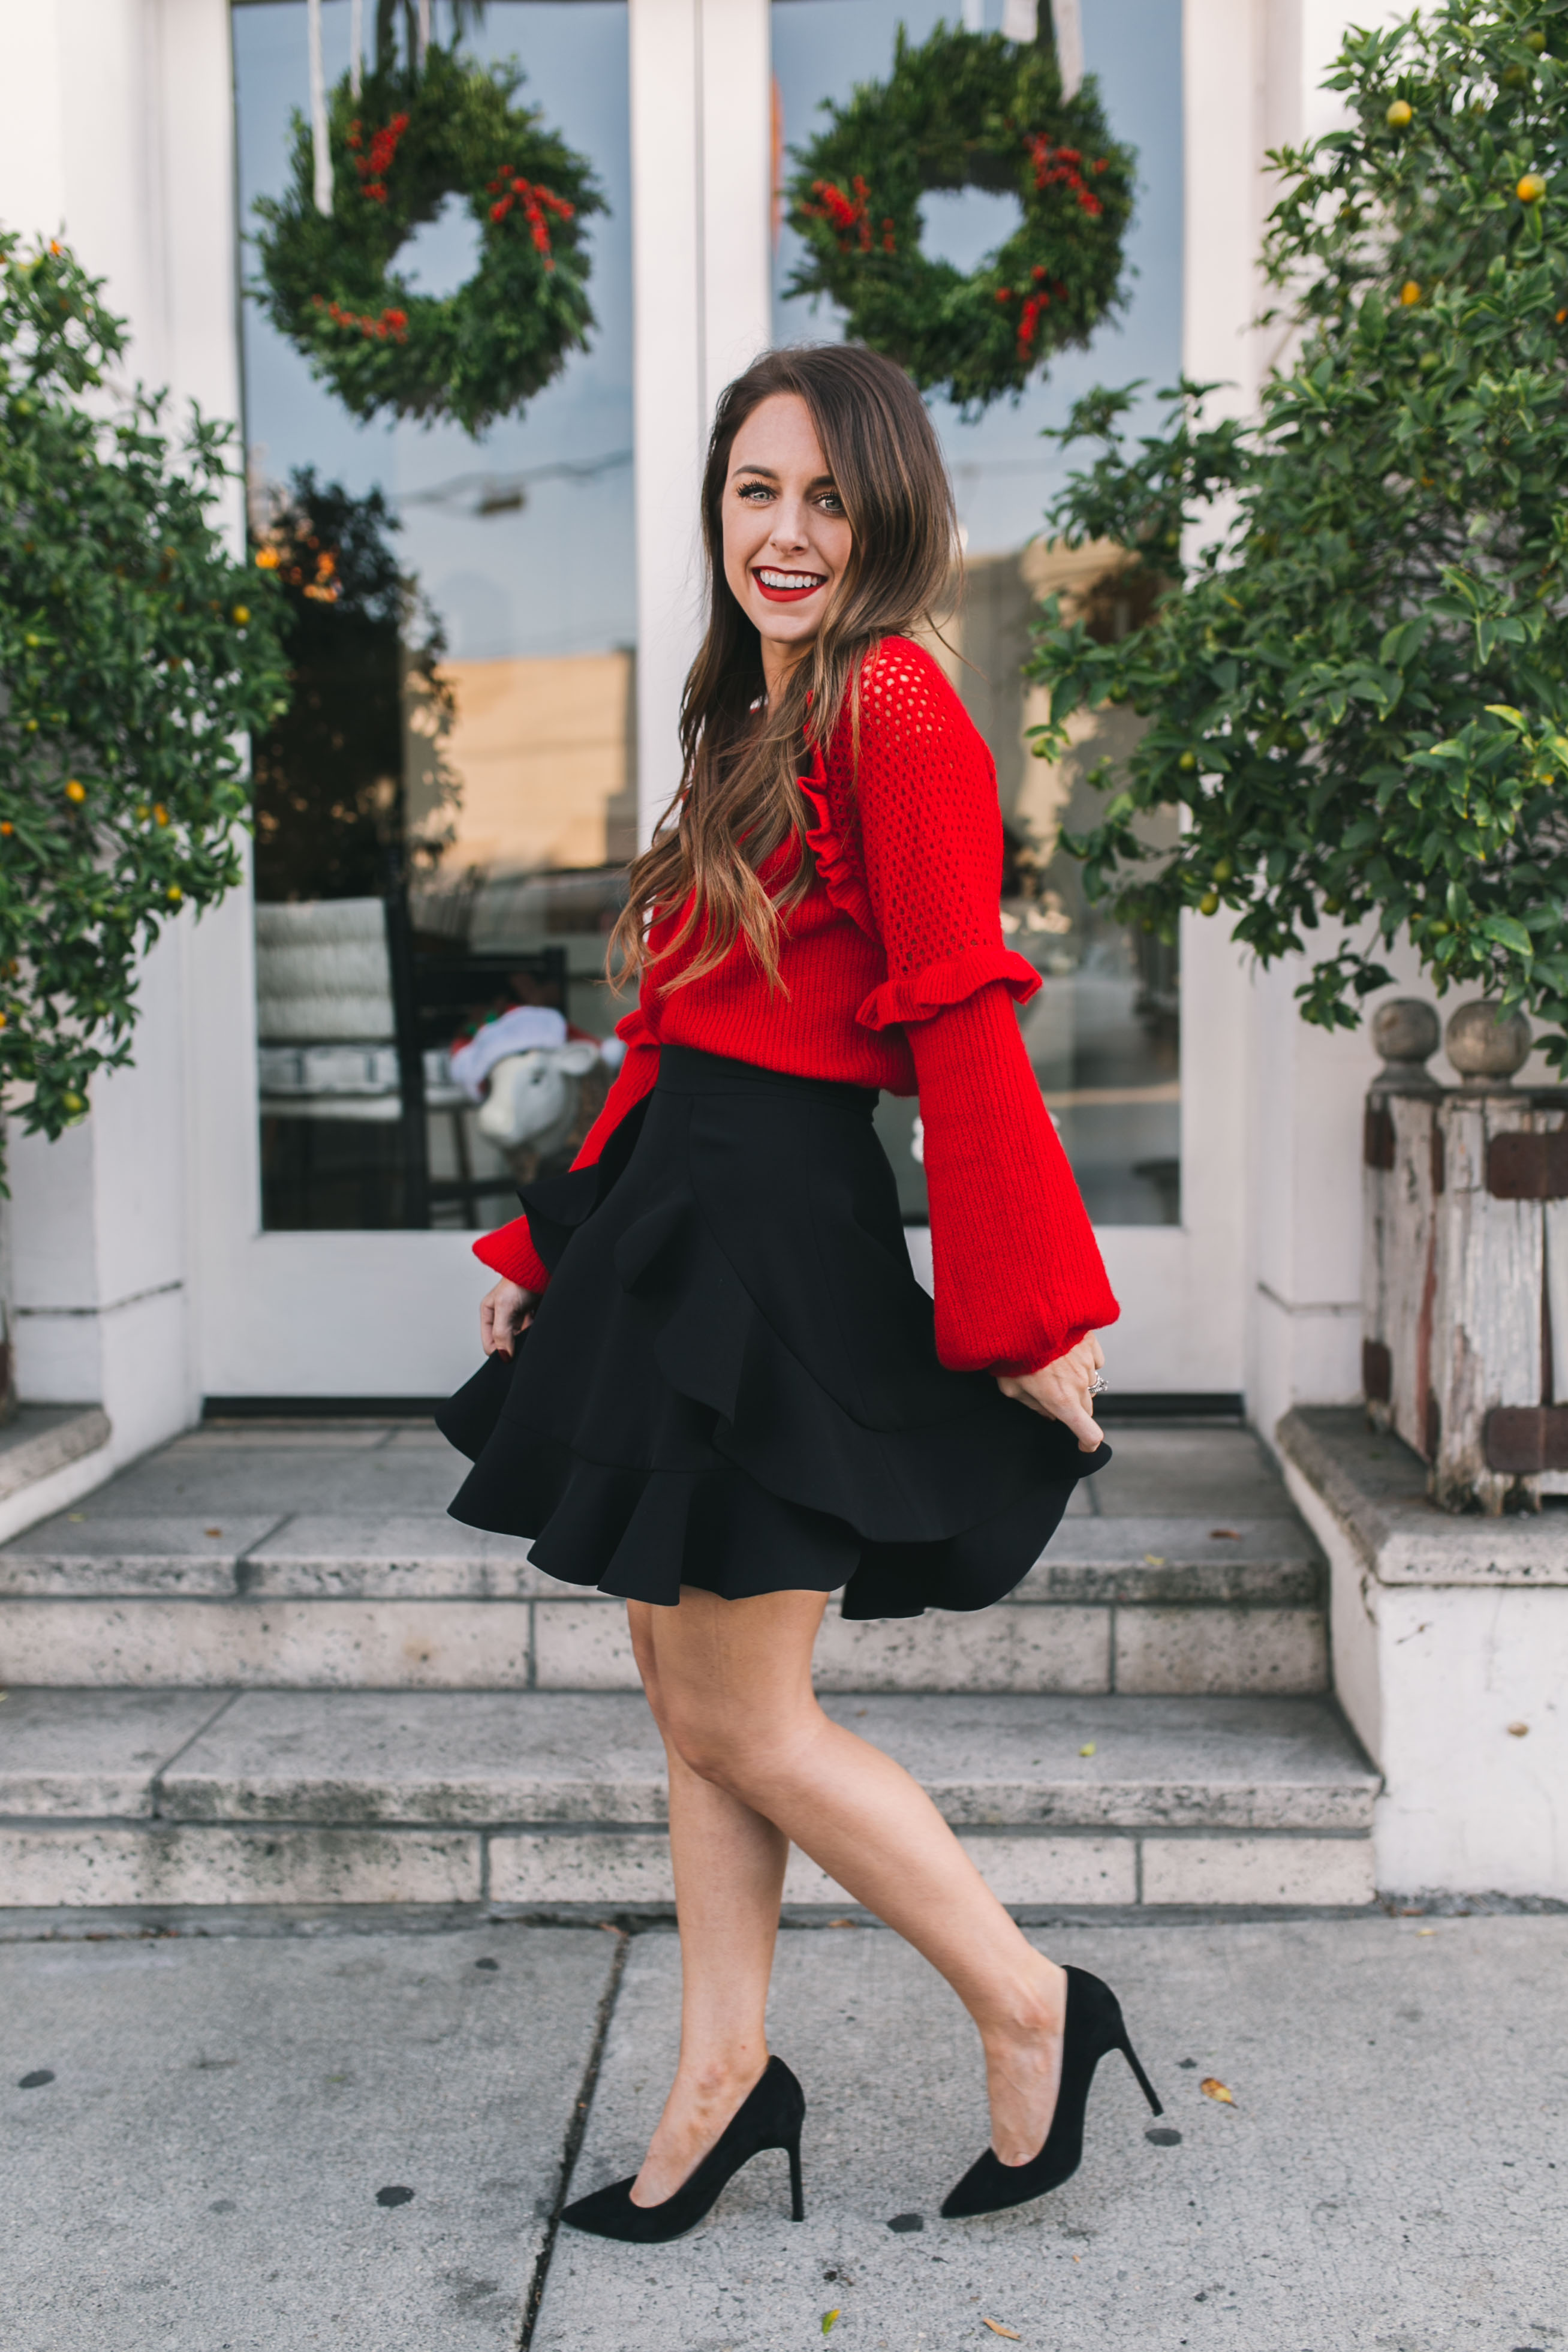 40314a0c6c9 ... black Fashion blogger Daryl-Ann Denner shares festive red sweaters